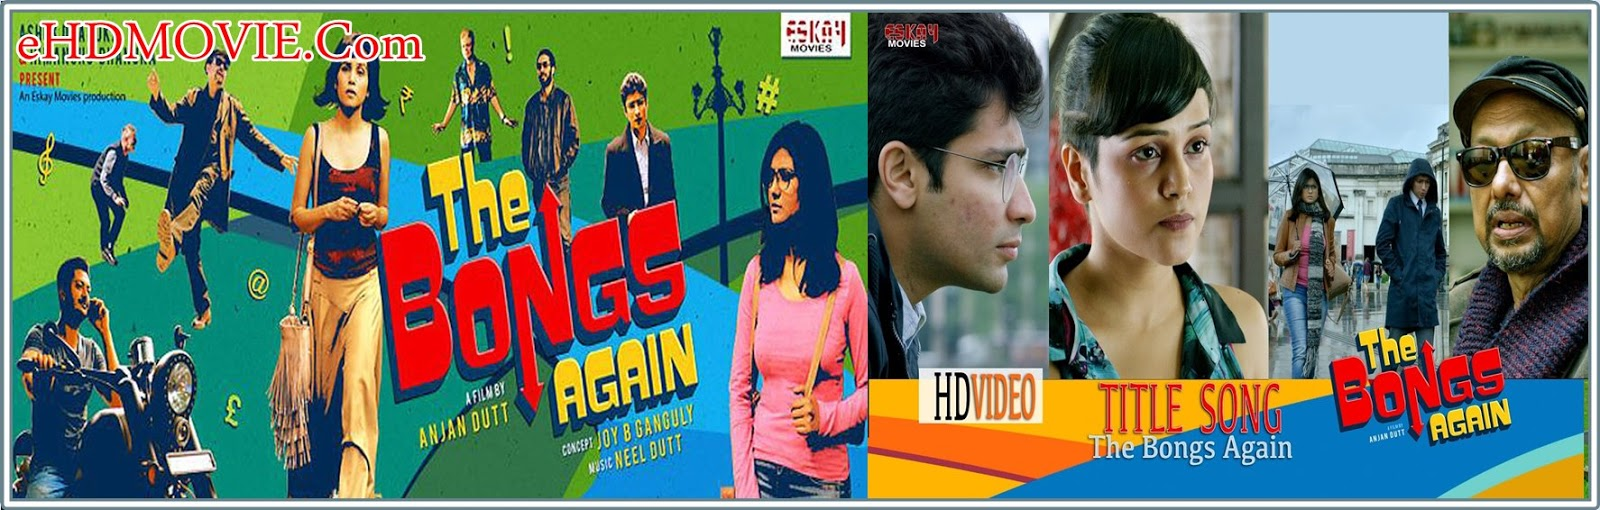 The Bongs Again 2017 Bengali Full Movie Original 480p - 720p HDTV-Rip 400MB - 1.1GB